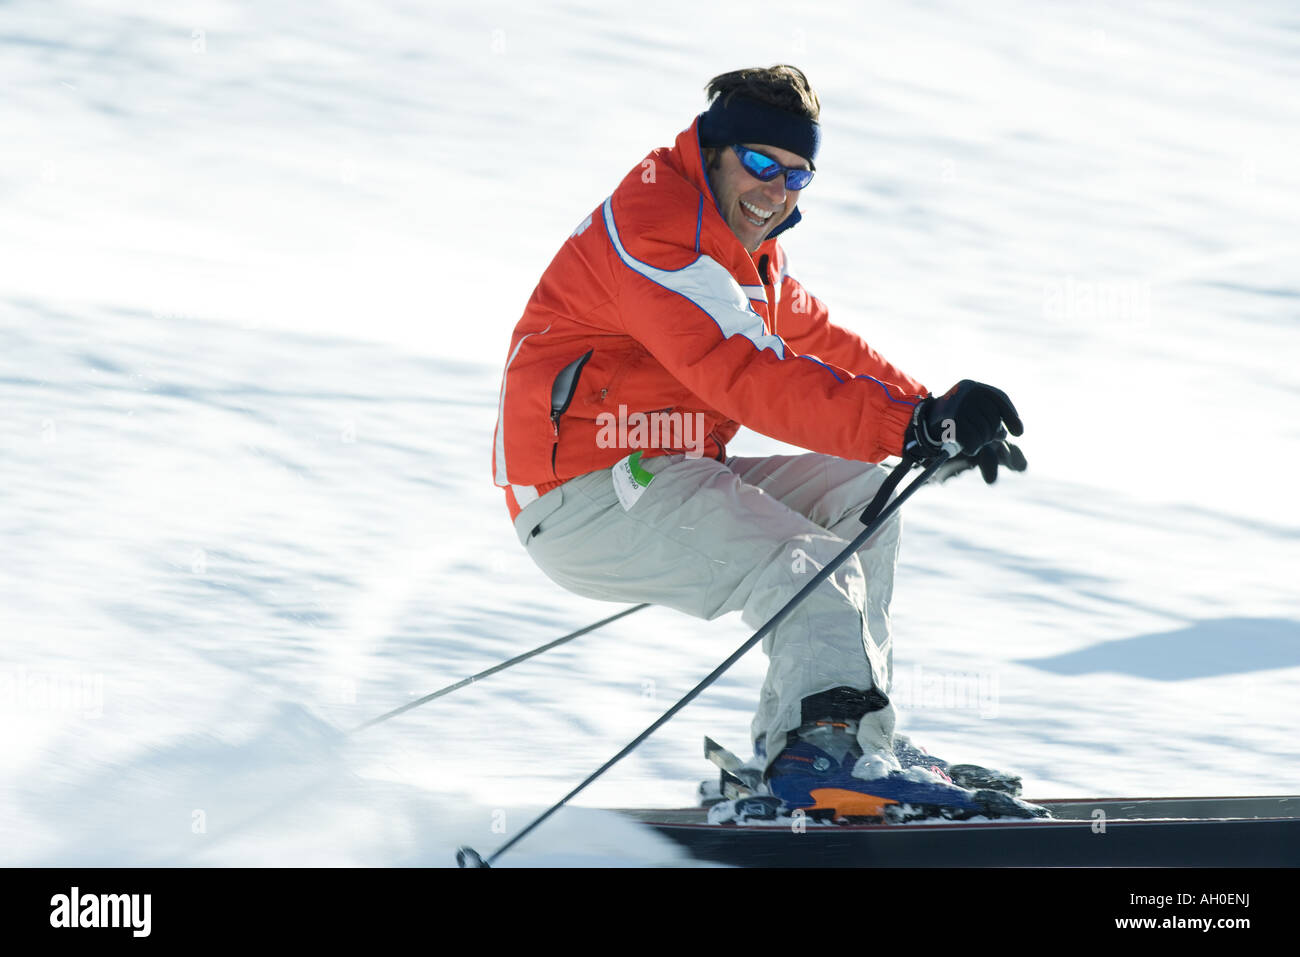 Mature male skier on ski slope, smiling toward camera, blurred motion Stock Photo